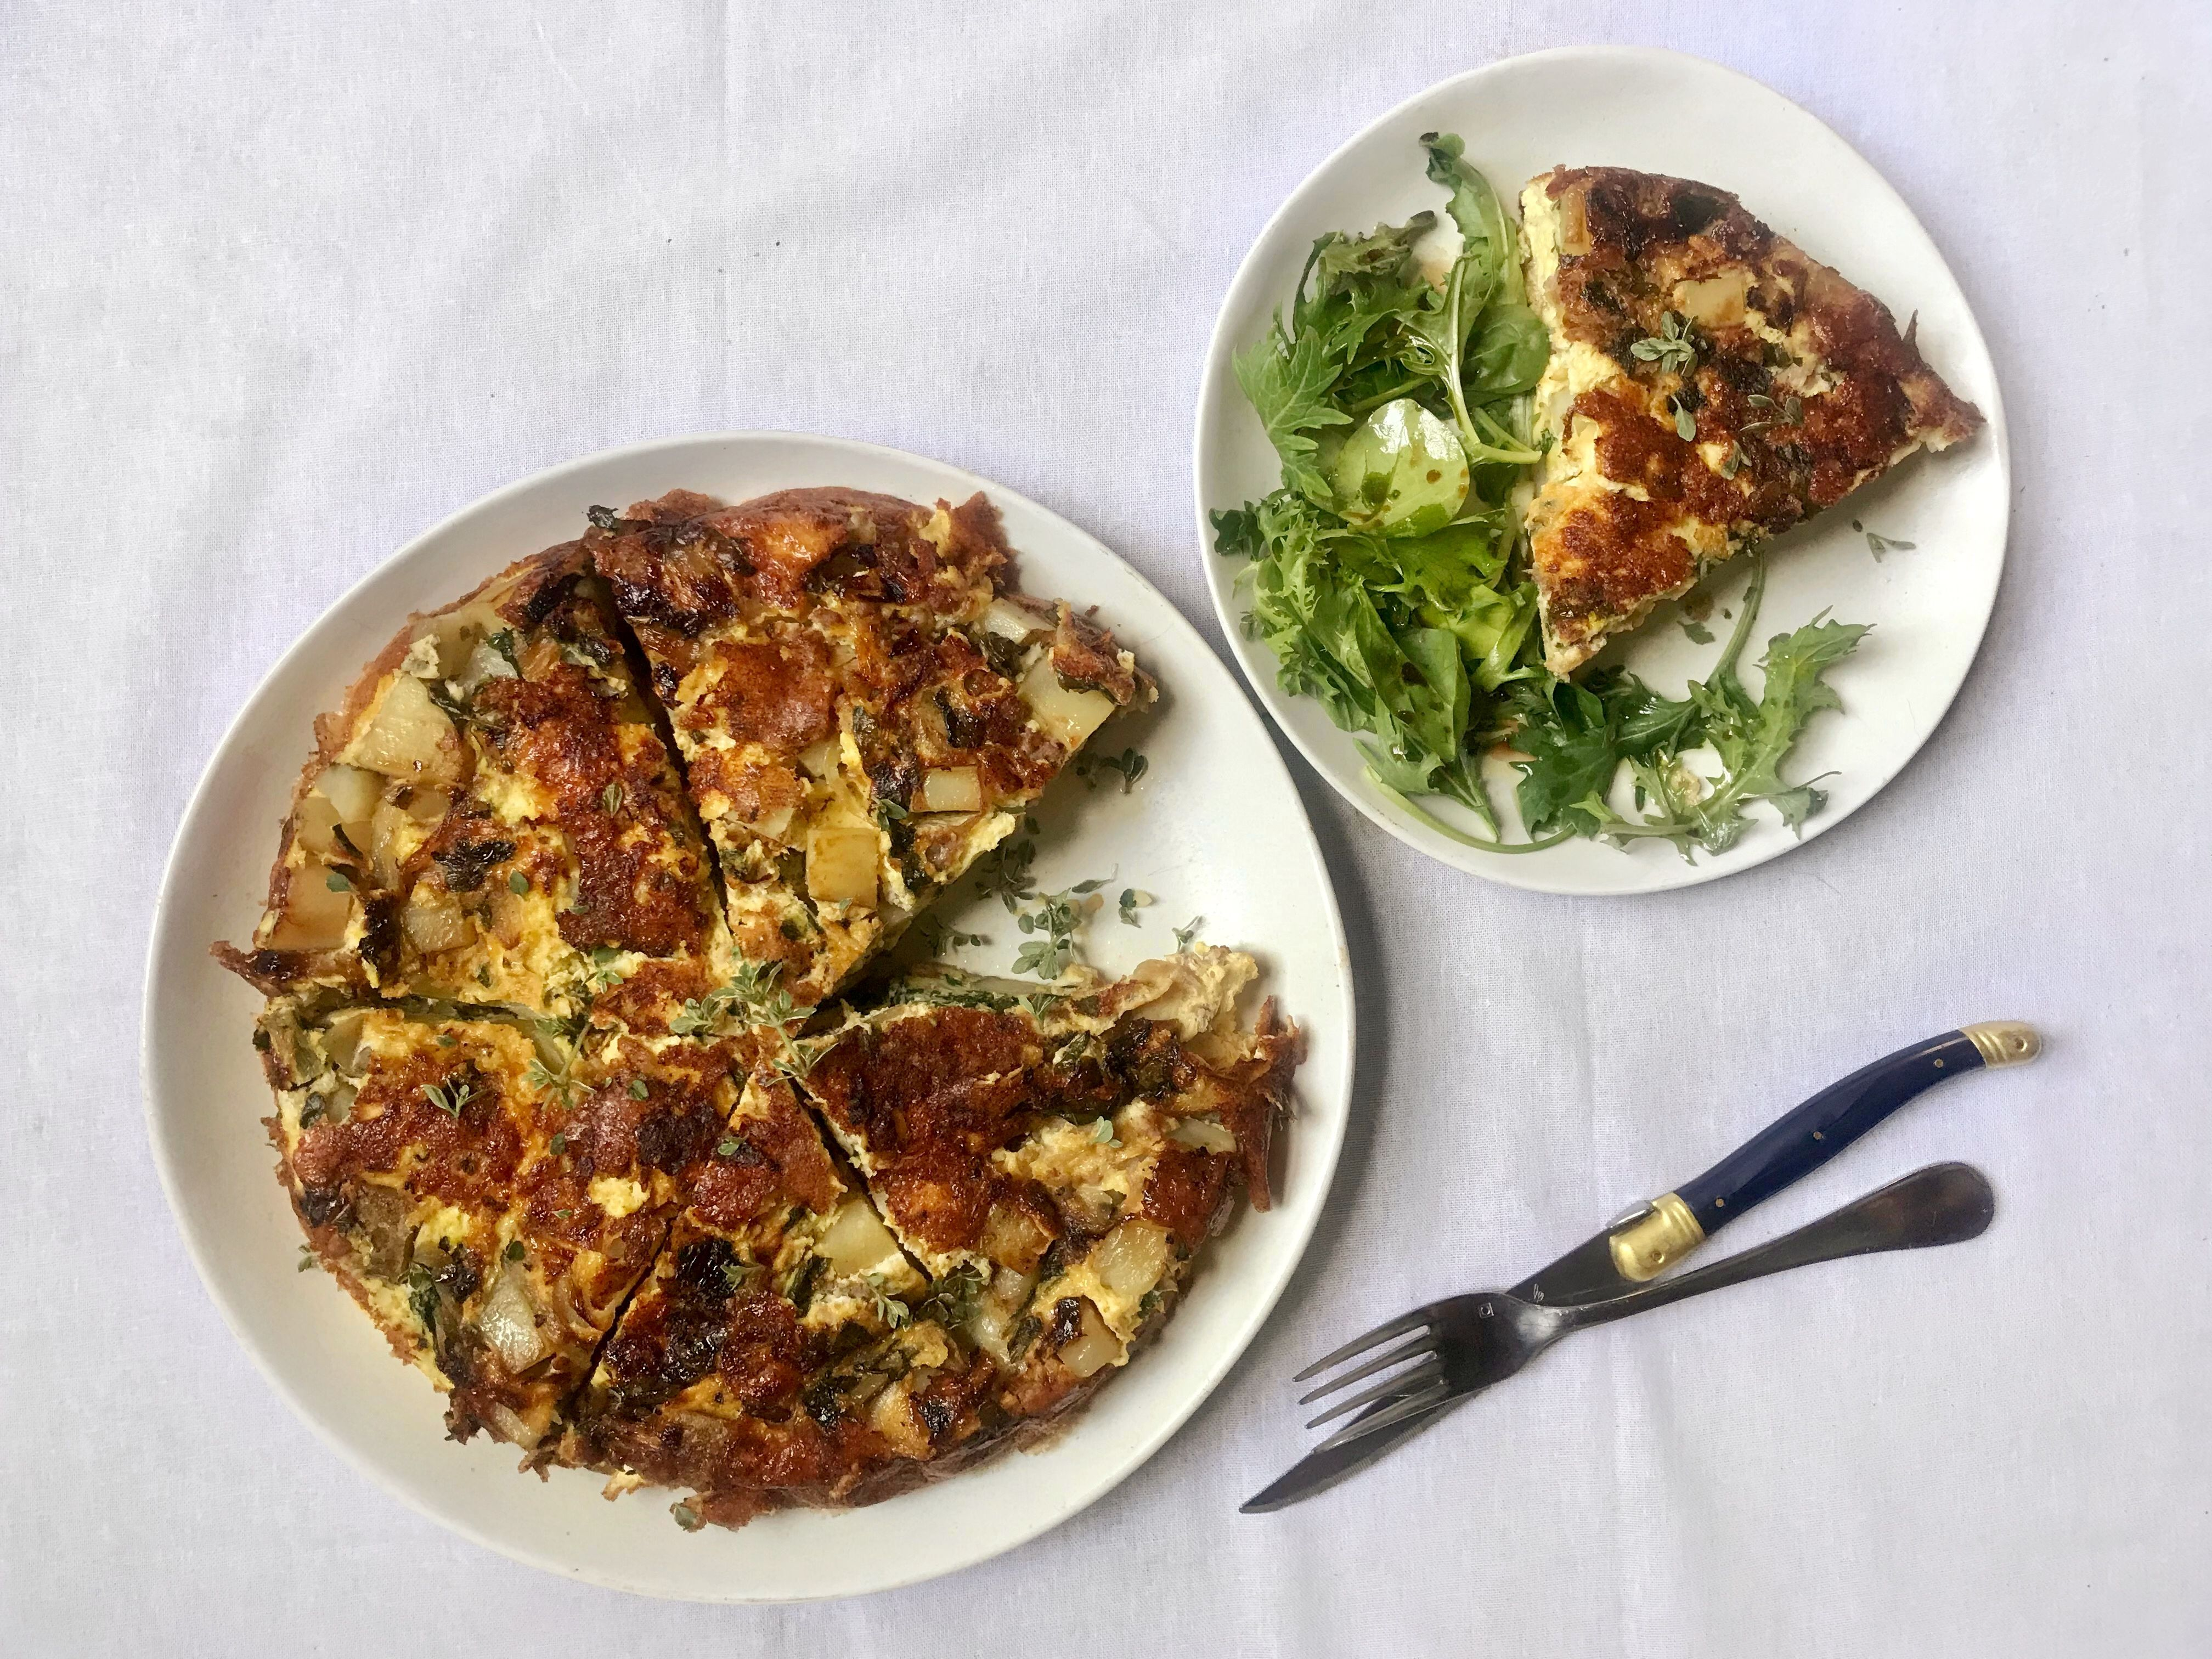 This easy frittata recipe may become your new favorite brunch dish